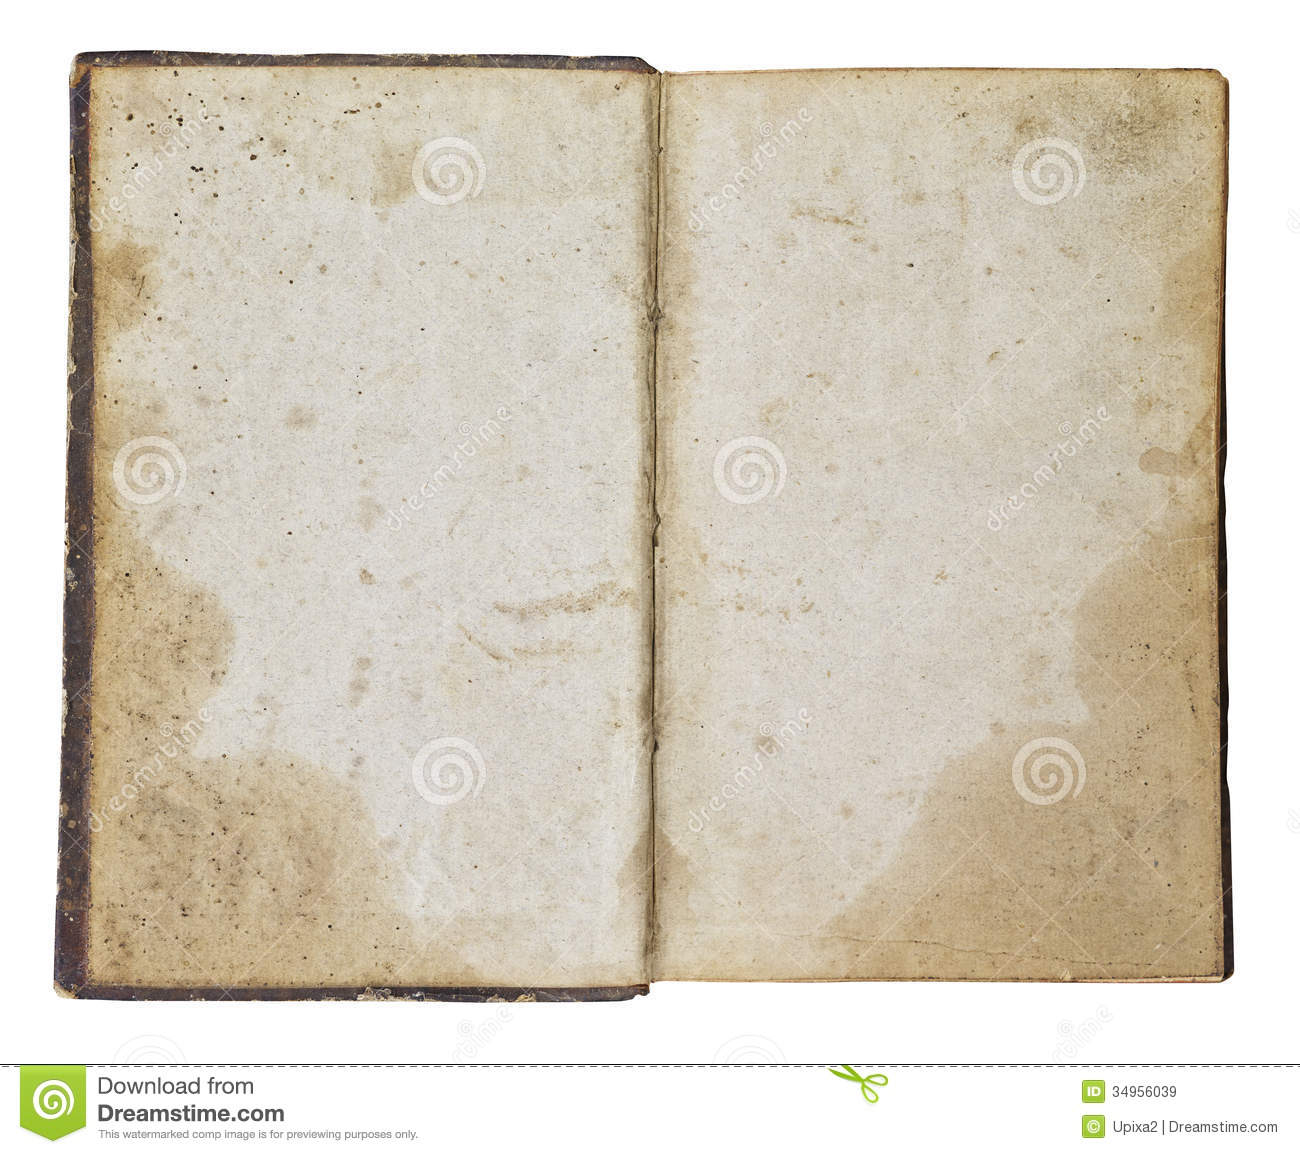 Paper beige background old book open stock image for Vintage book paper